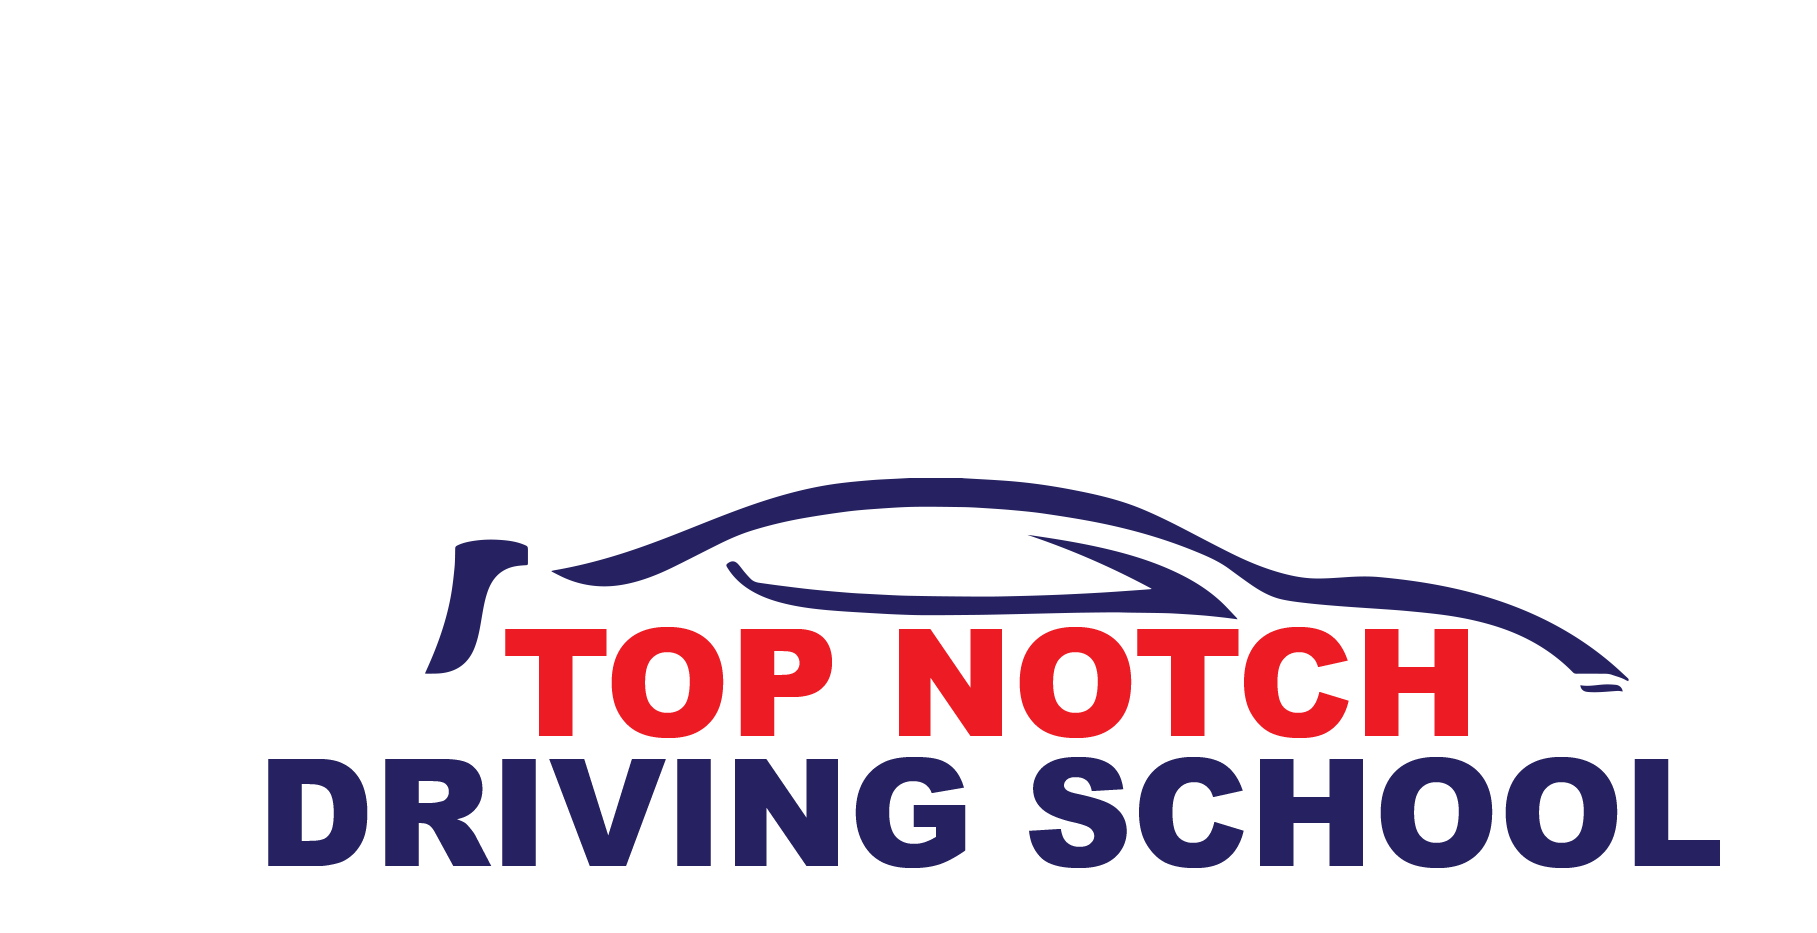 Top Notch Driving School Orcutt and Lompoc